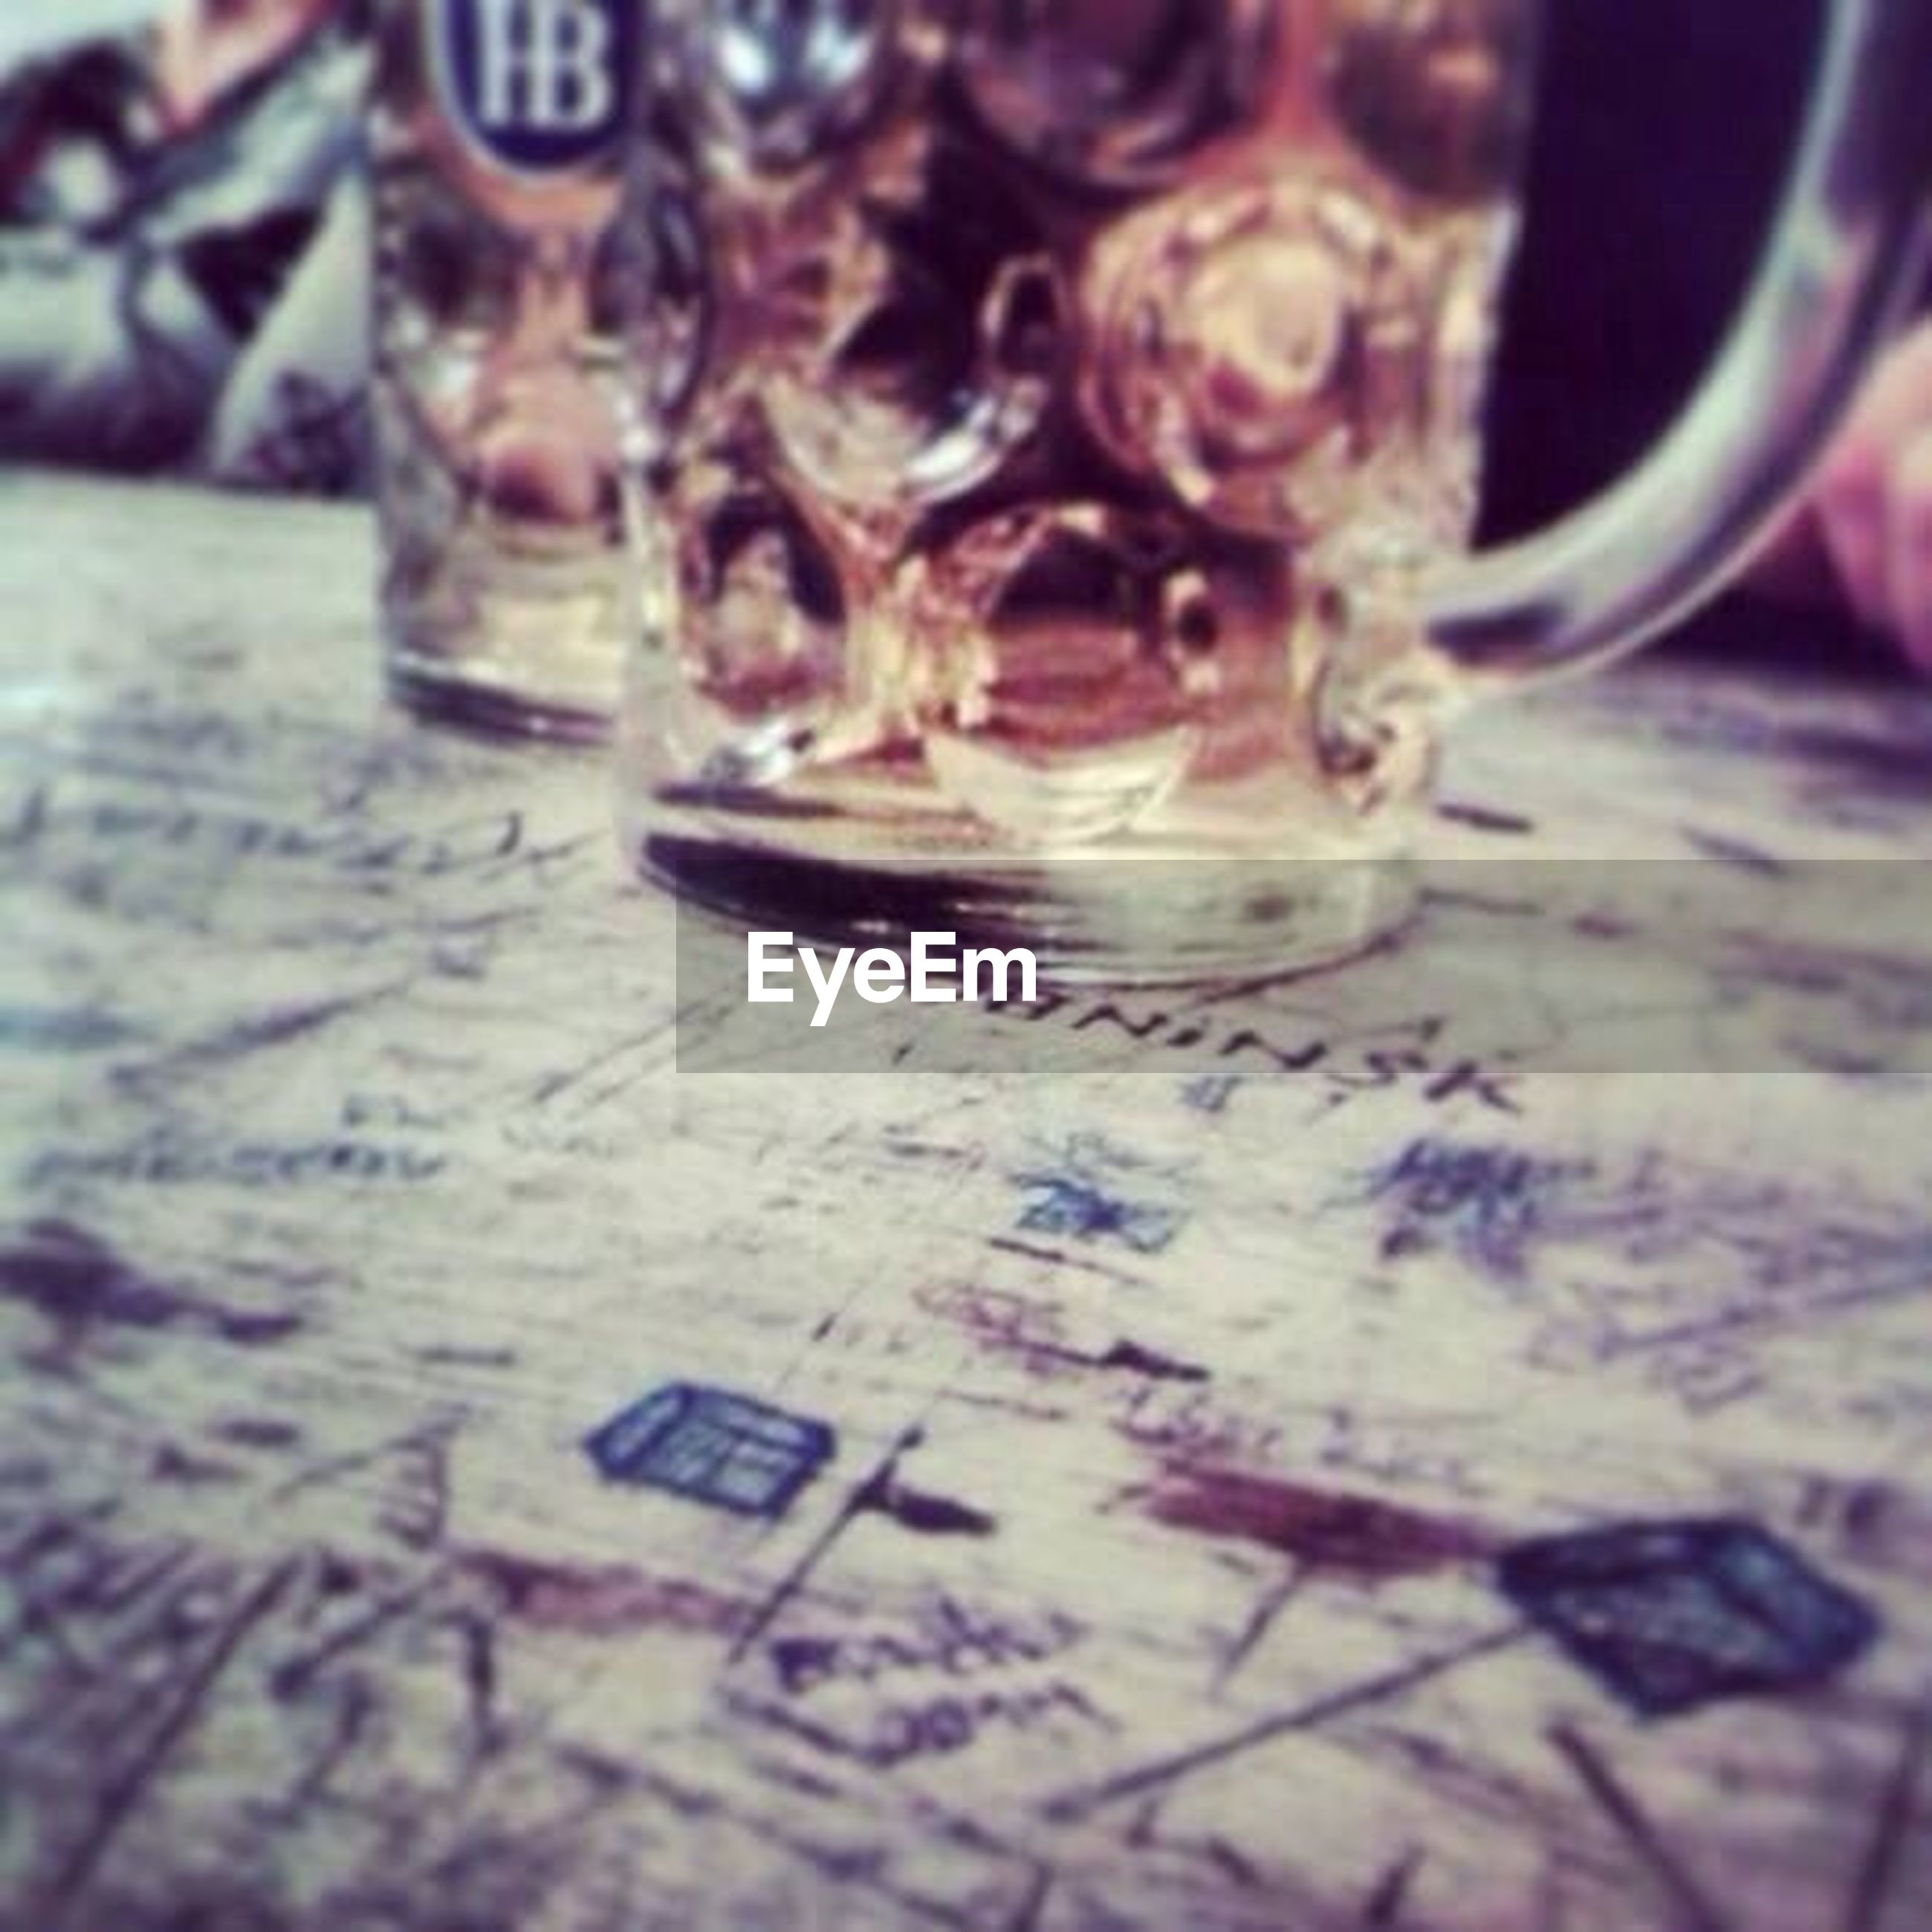 close-up, selective focus, focus on foreground, indoors, table, still life, text, no people, water, high angle view, day, reflection, glass - material, art and craft, western script, metal, bottle, human representation, drinking glass